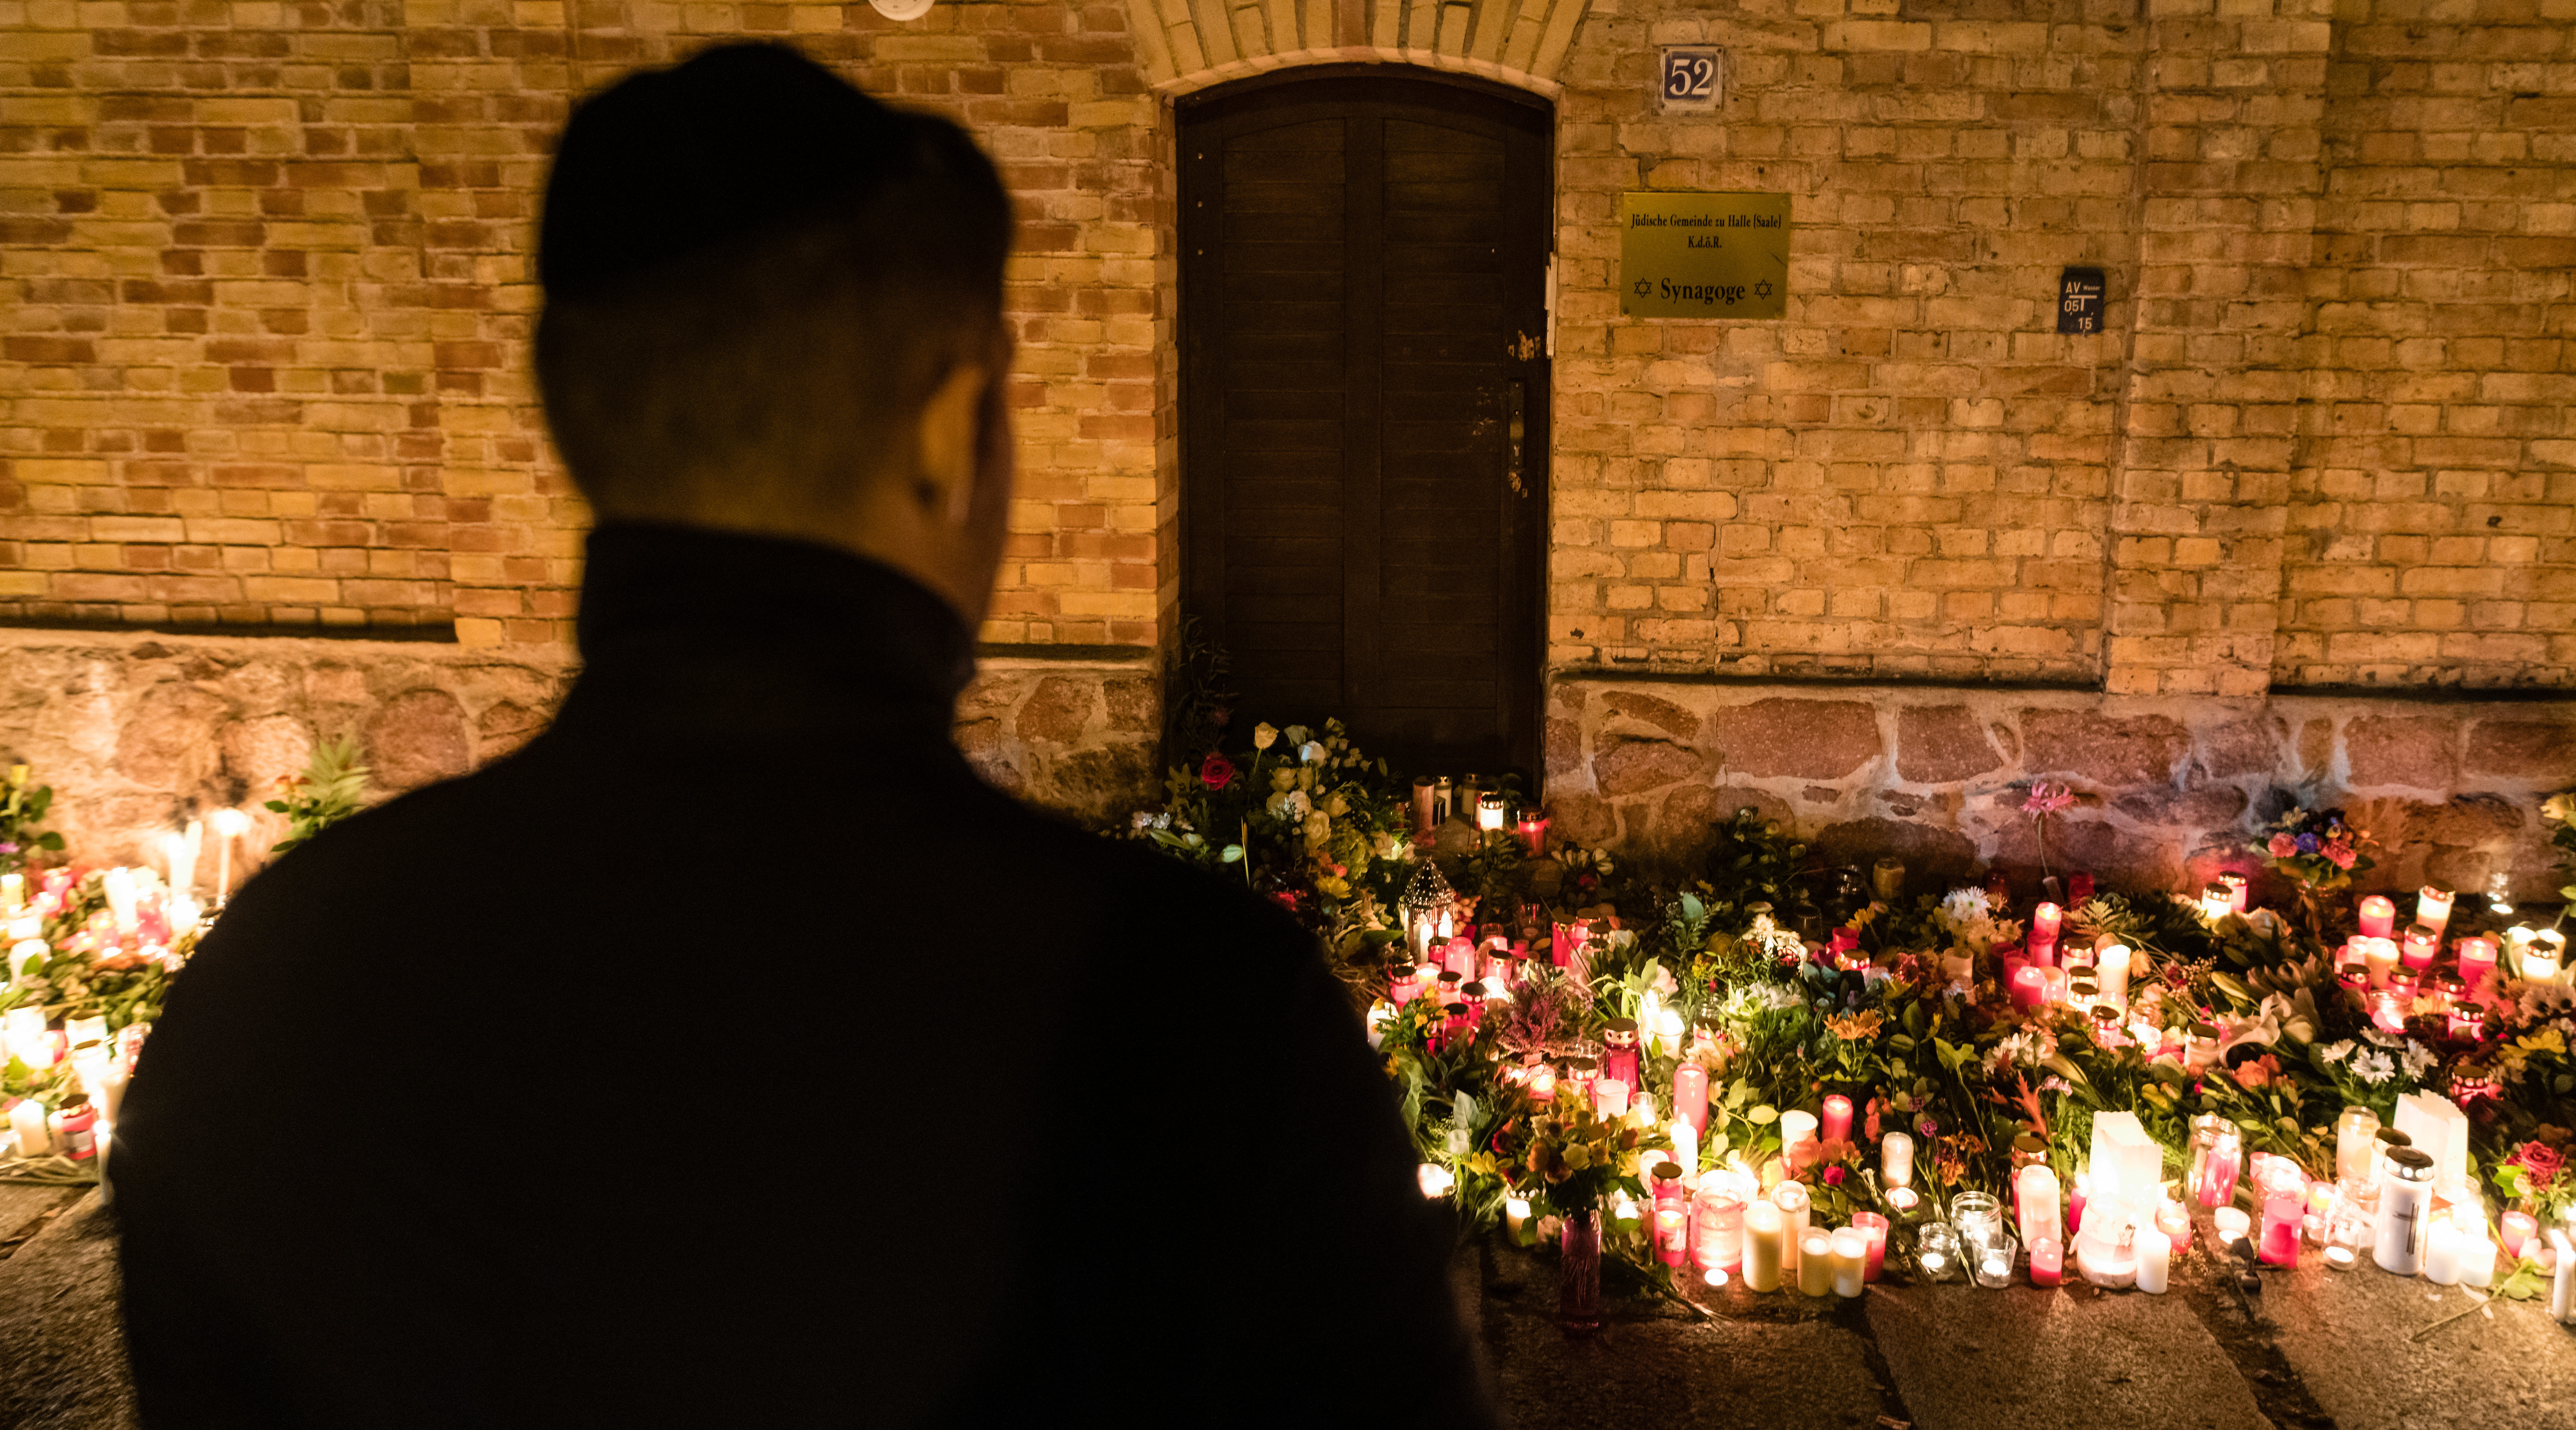 A German police officer allegedly sent fan mail to the gunman who attacked a synagogue...